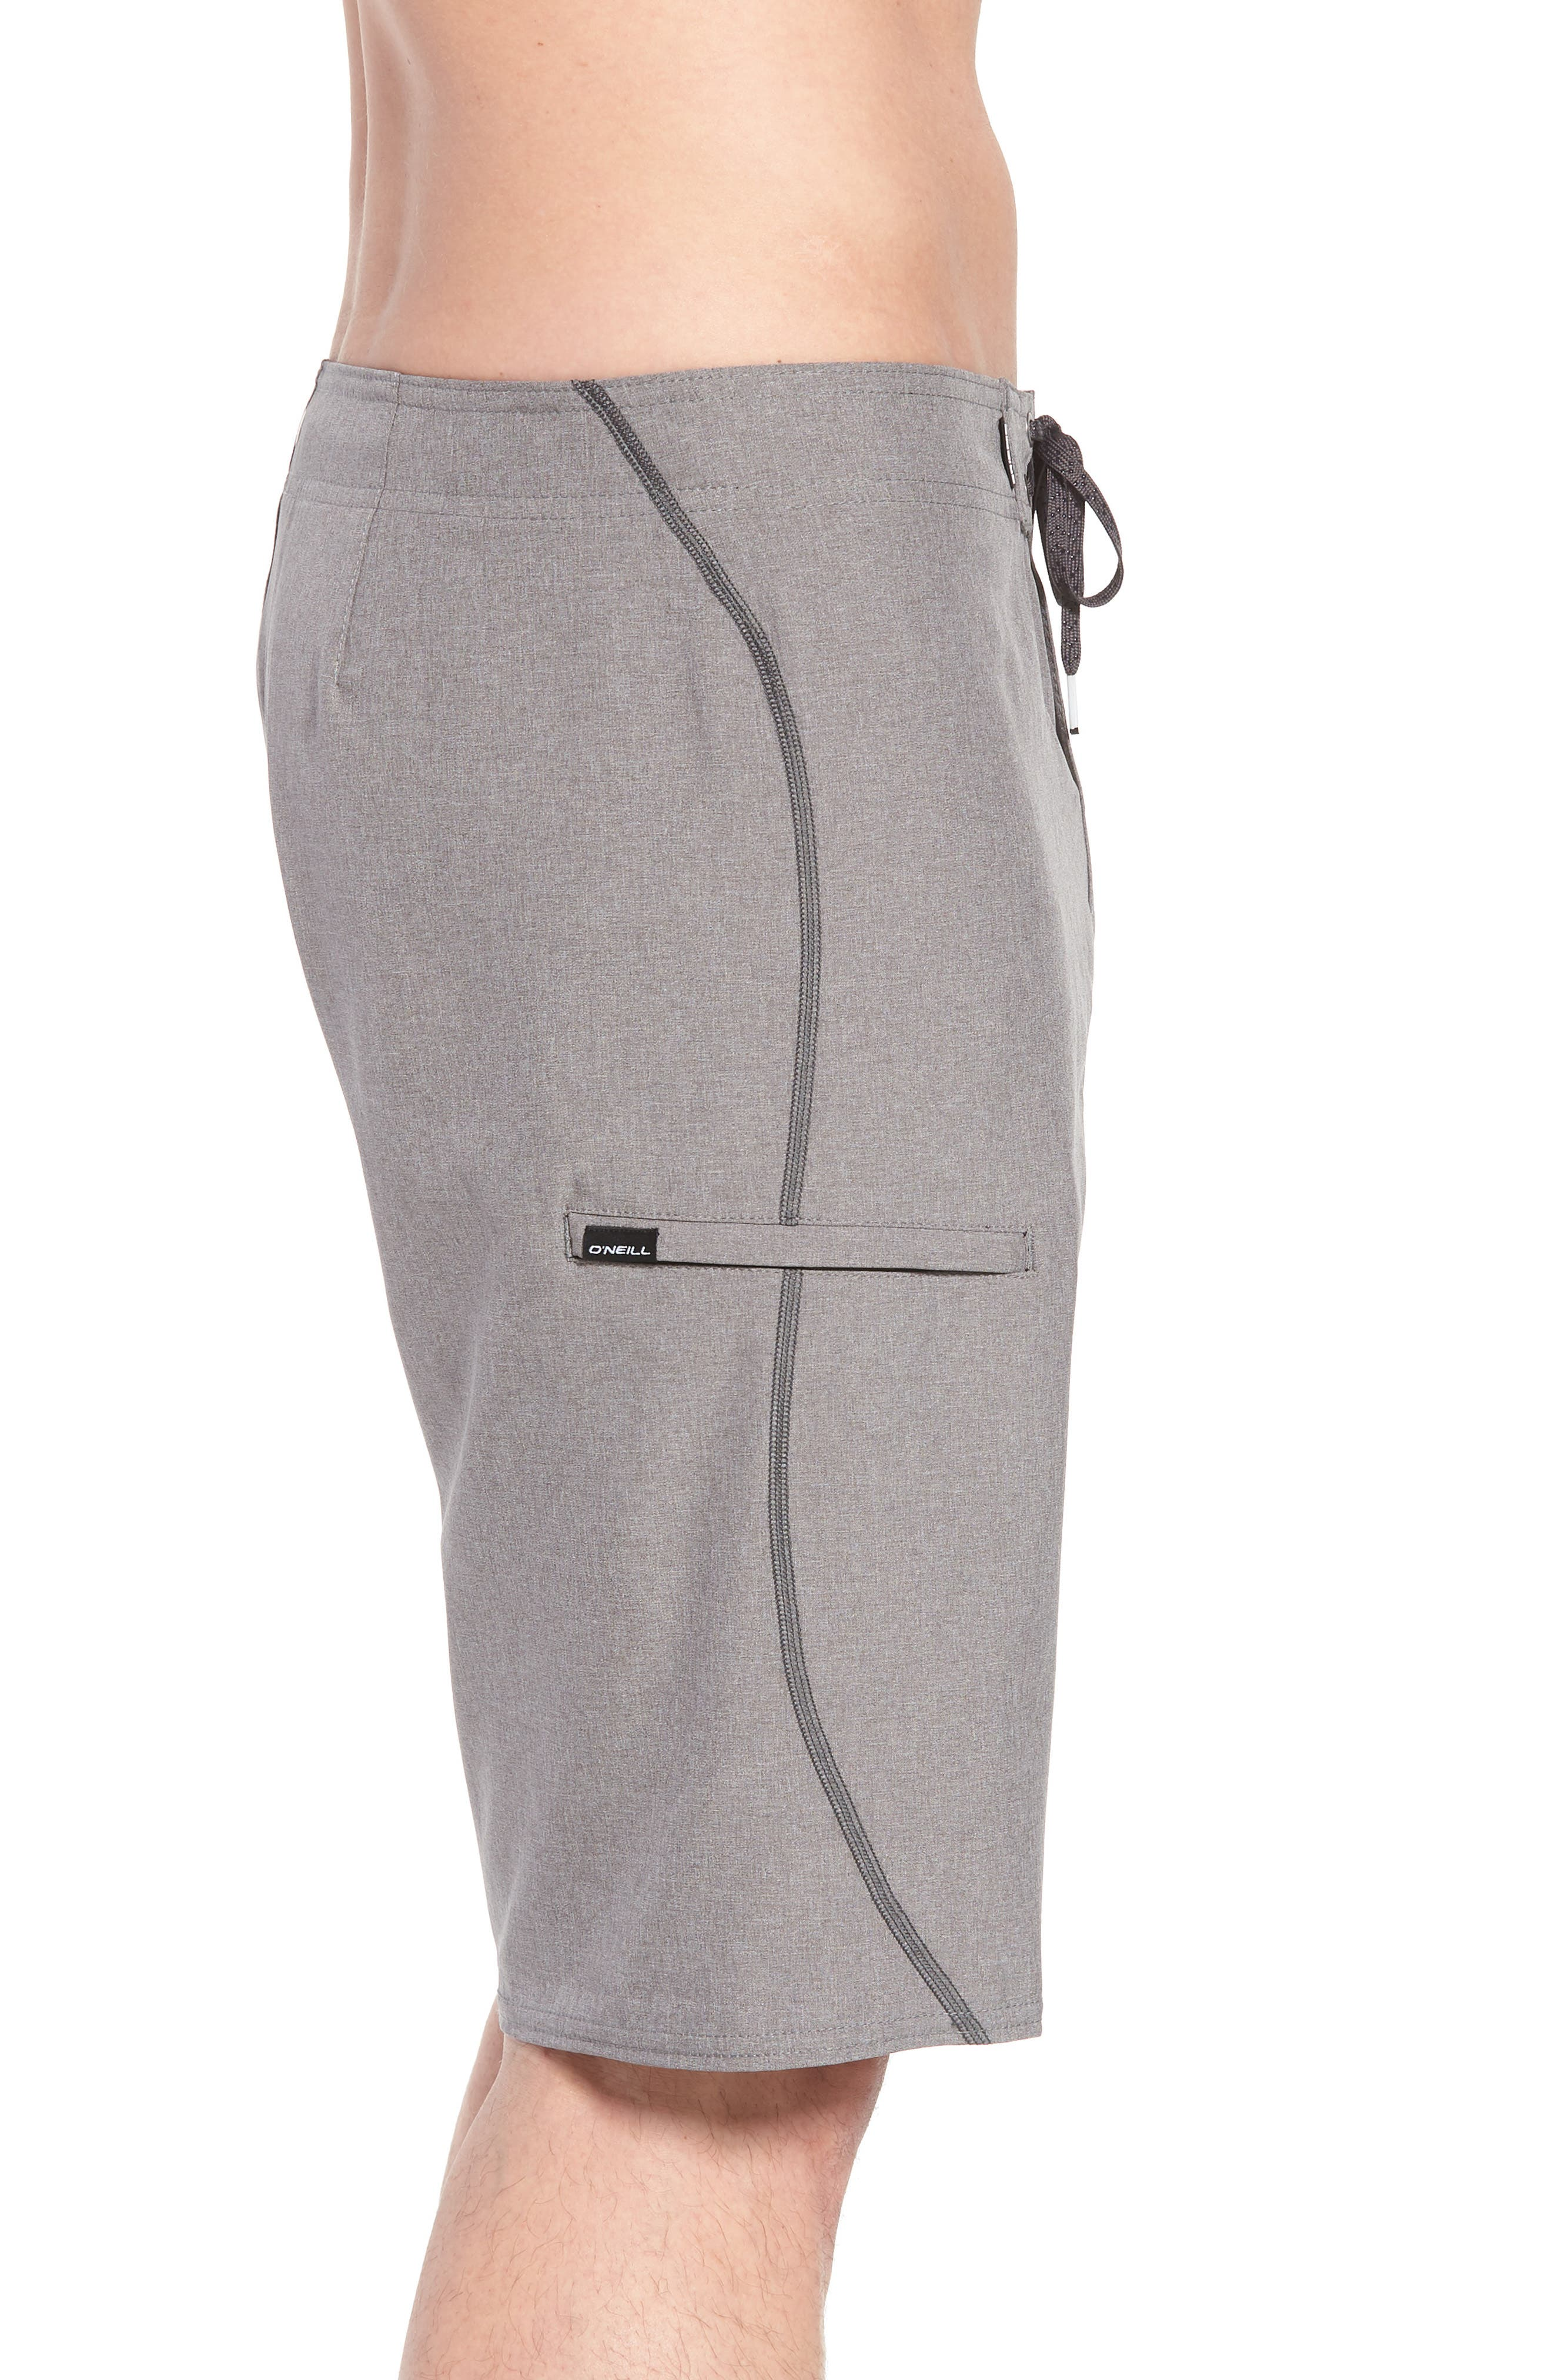 Hyperfreak S-Seam Board Shorts,                             Alternate thumbnail 4, color,                             Heather Grey